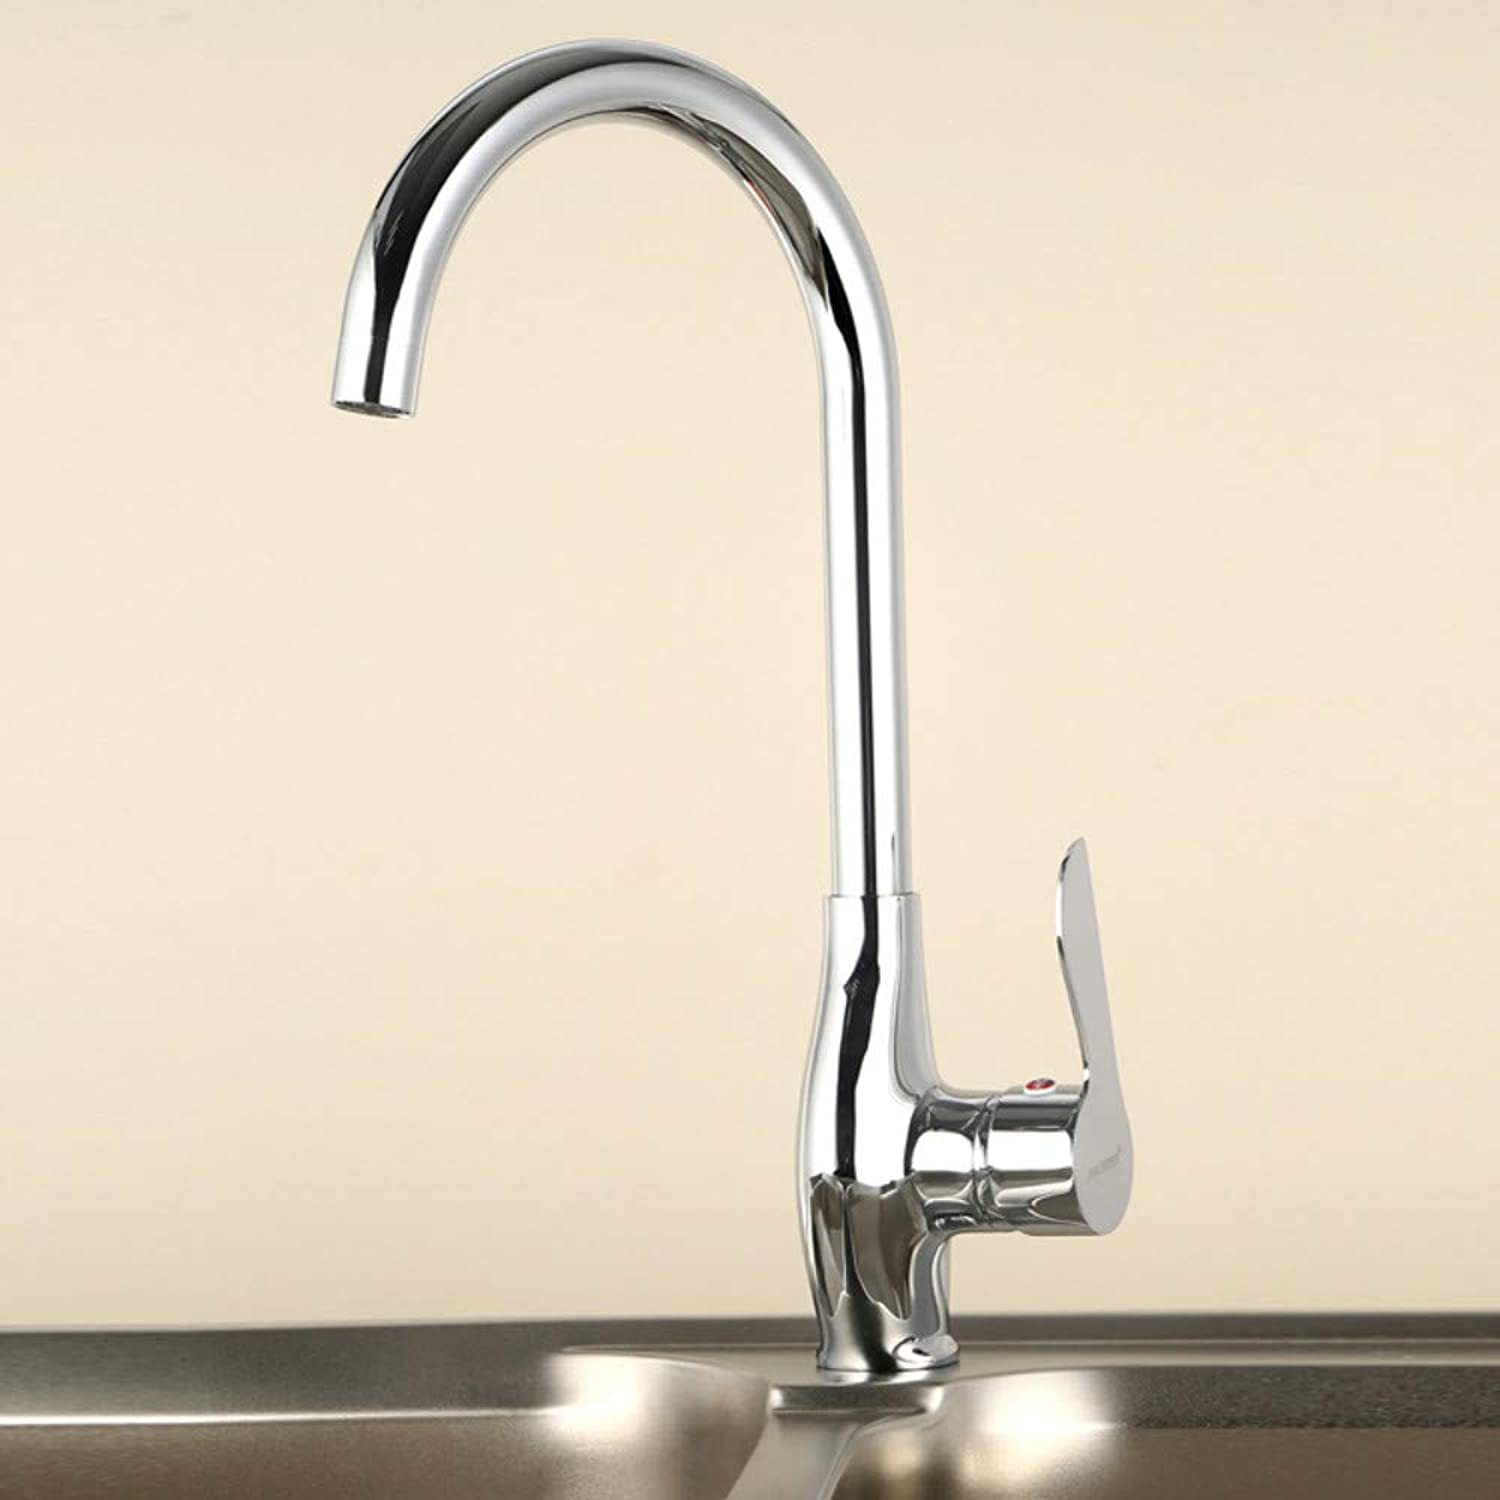 Kitchen Sink Faucet 360 Degree redating Kitchen Faucet Copper Single Handle greenical Basin Hot and Cold Water Faucet